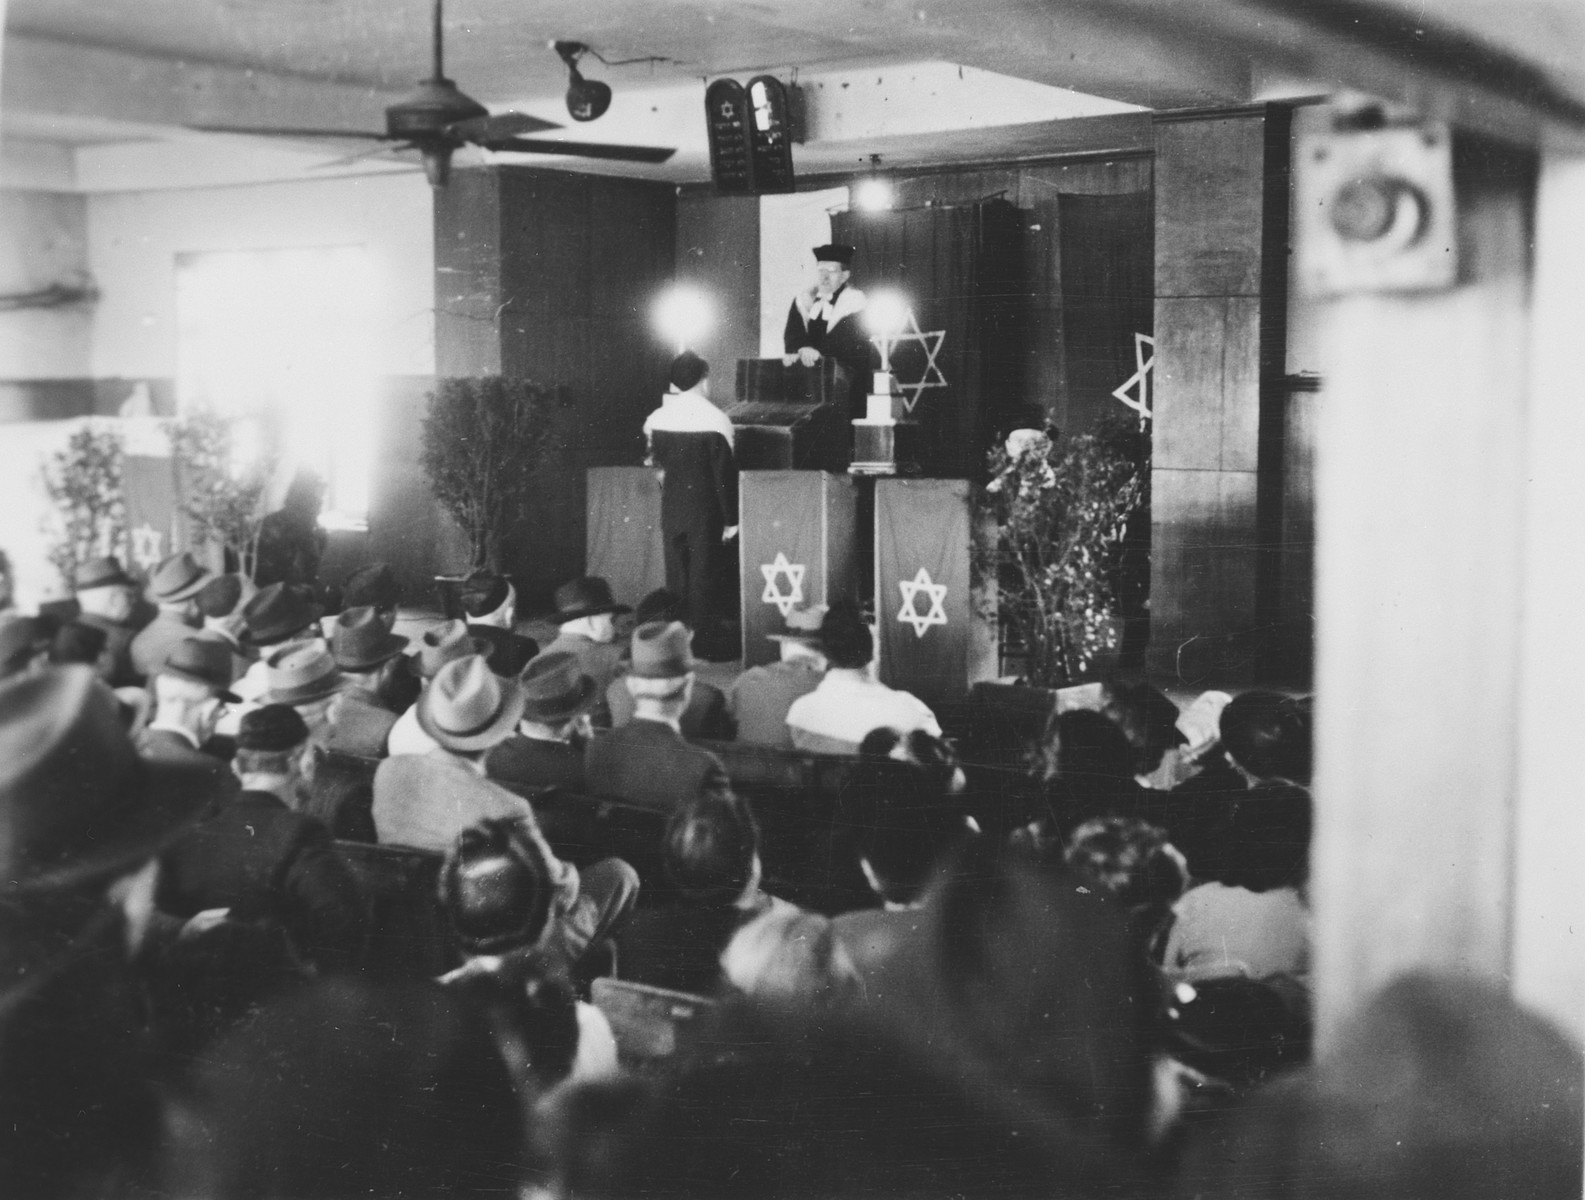 Jewish refugees gather for a religious service in Shanghai.